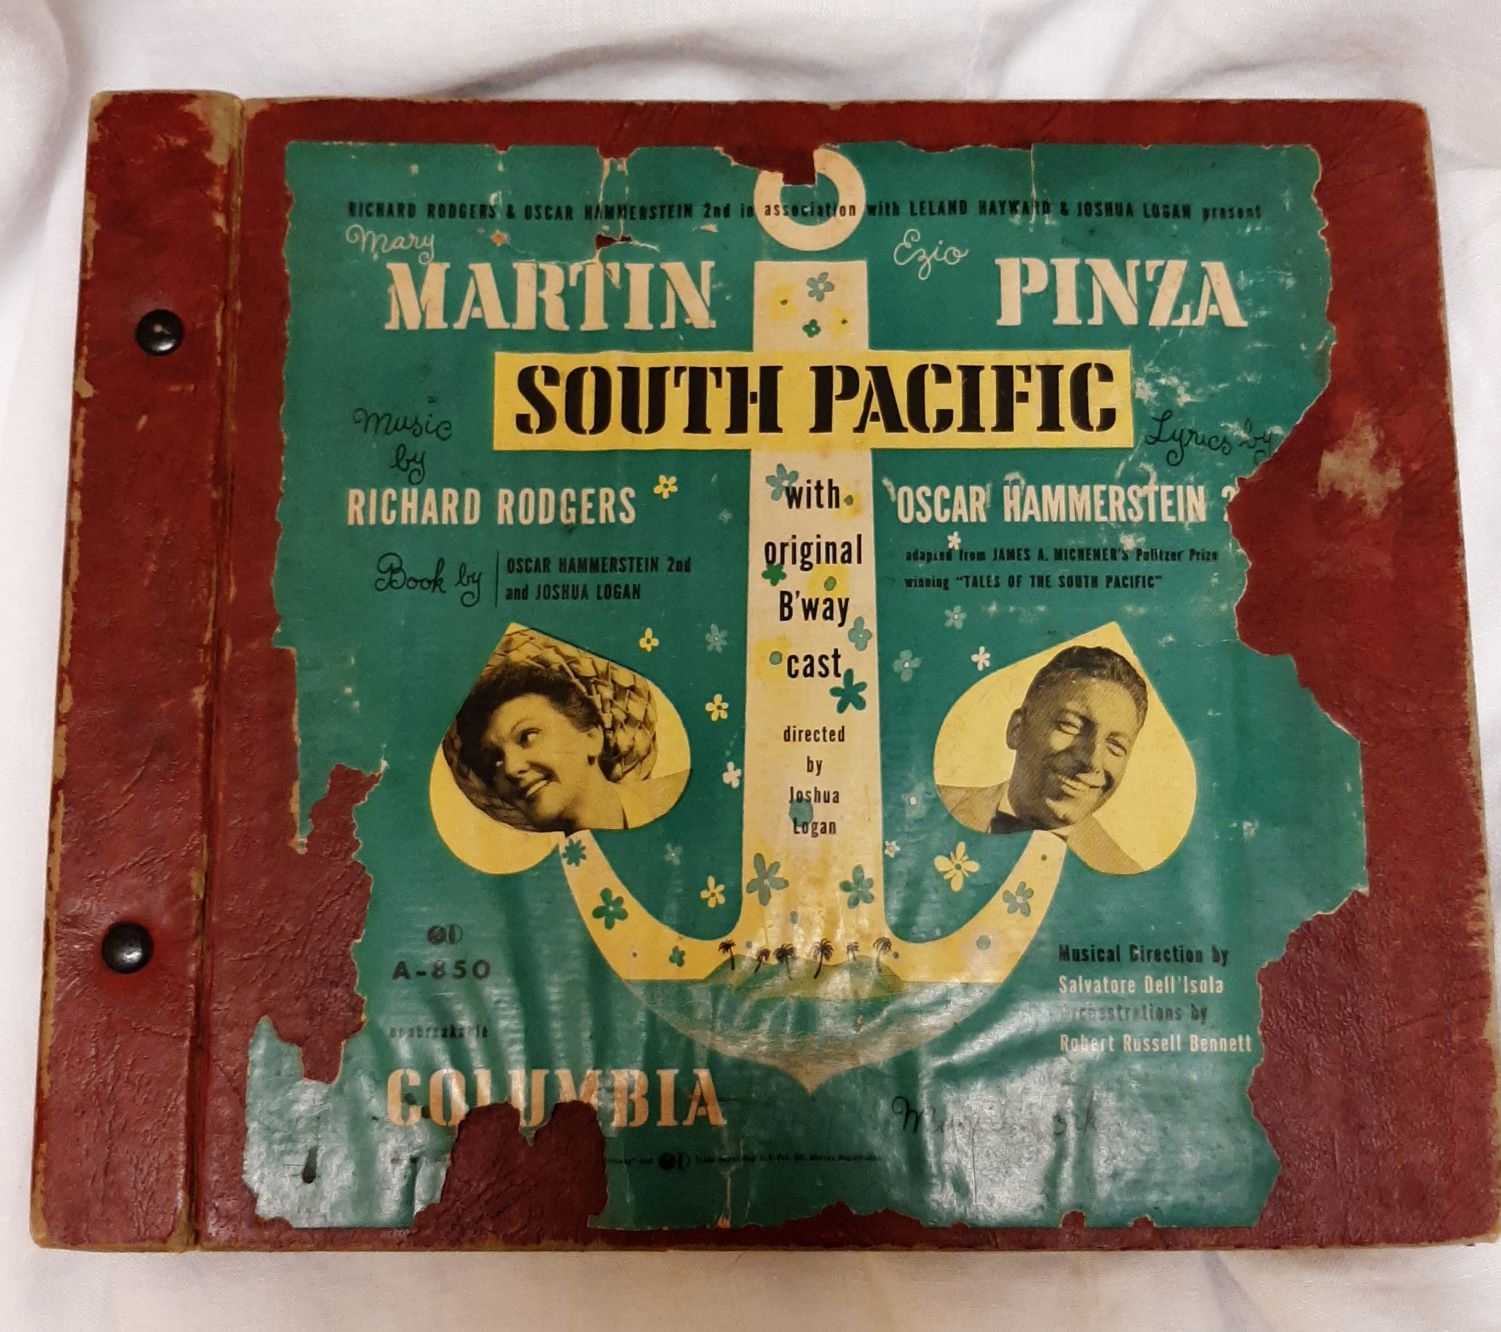 45 records - South Pacific